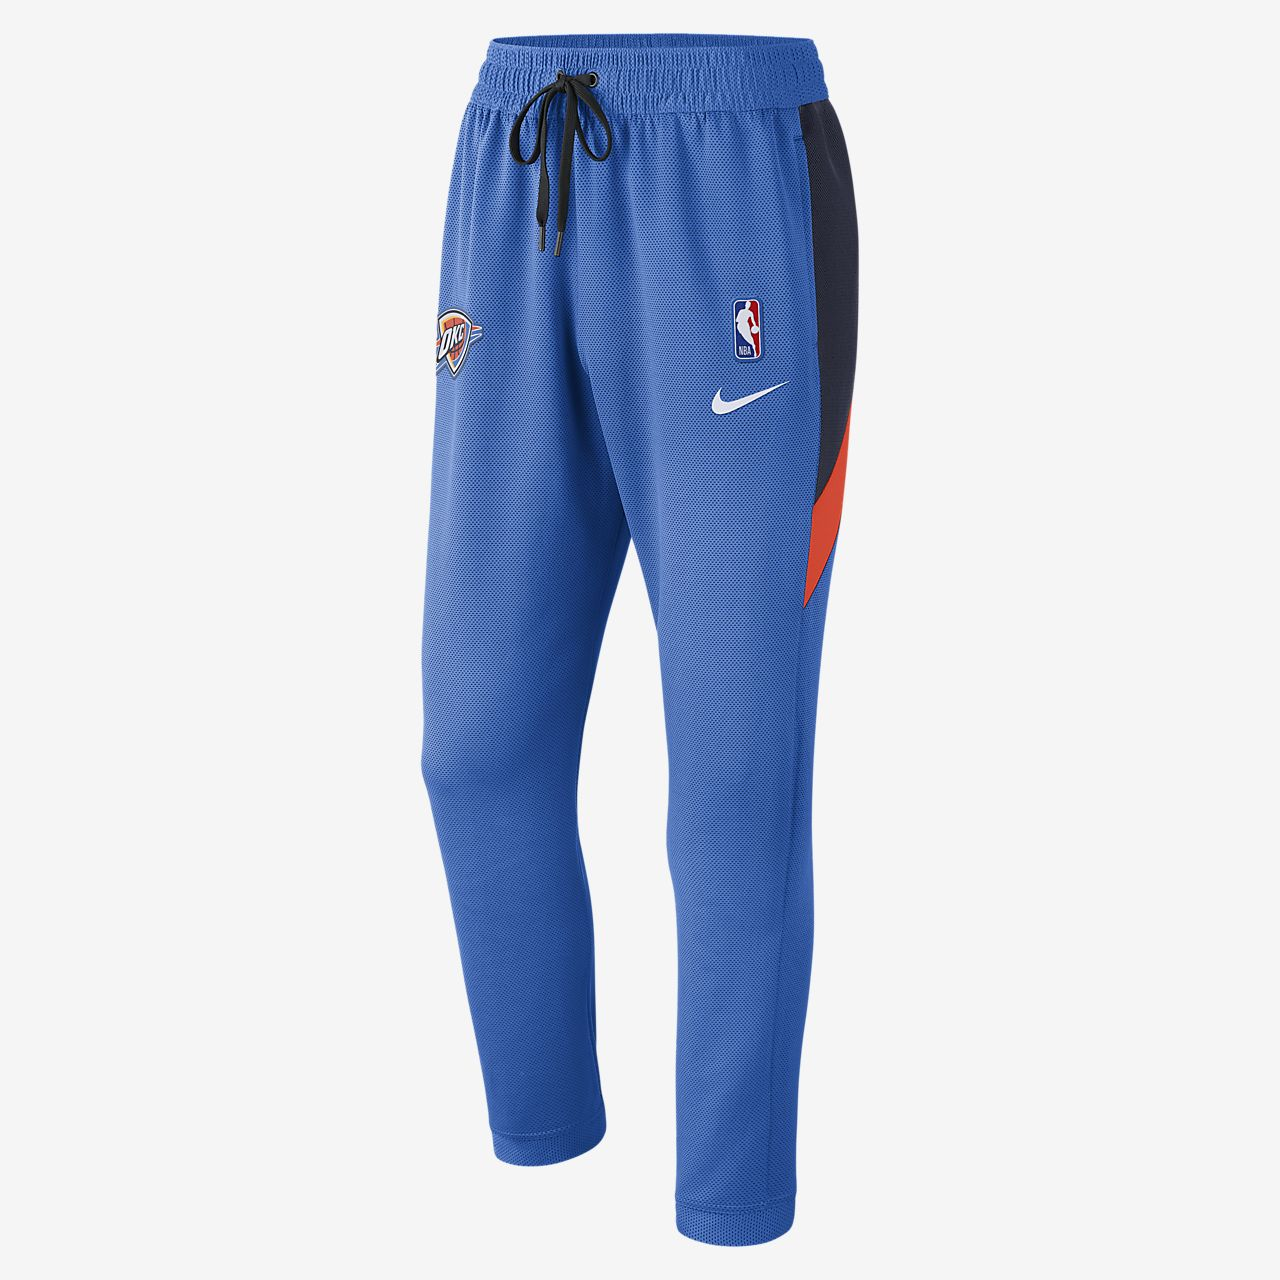 Oklahoma City Thunder Nike Therma Flex Showtime NBA-s férfinadrág